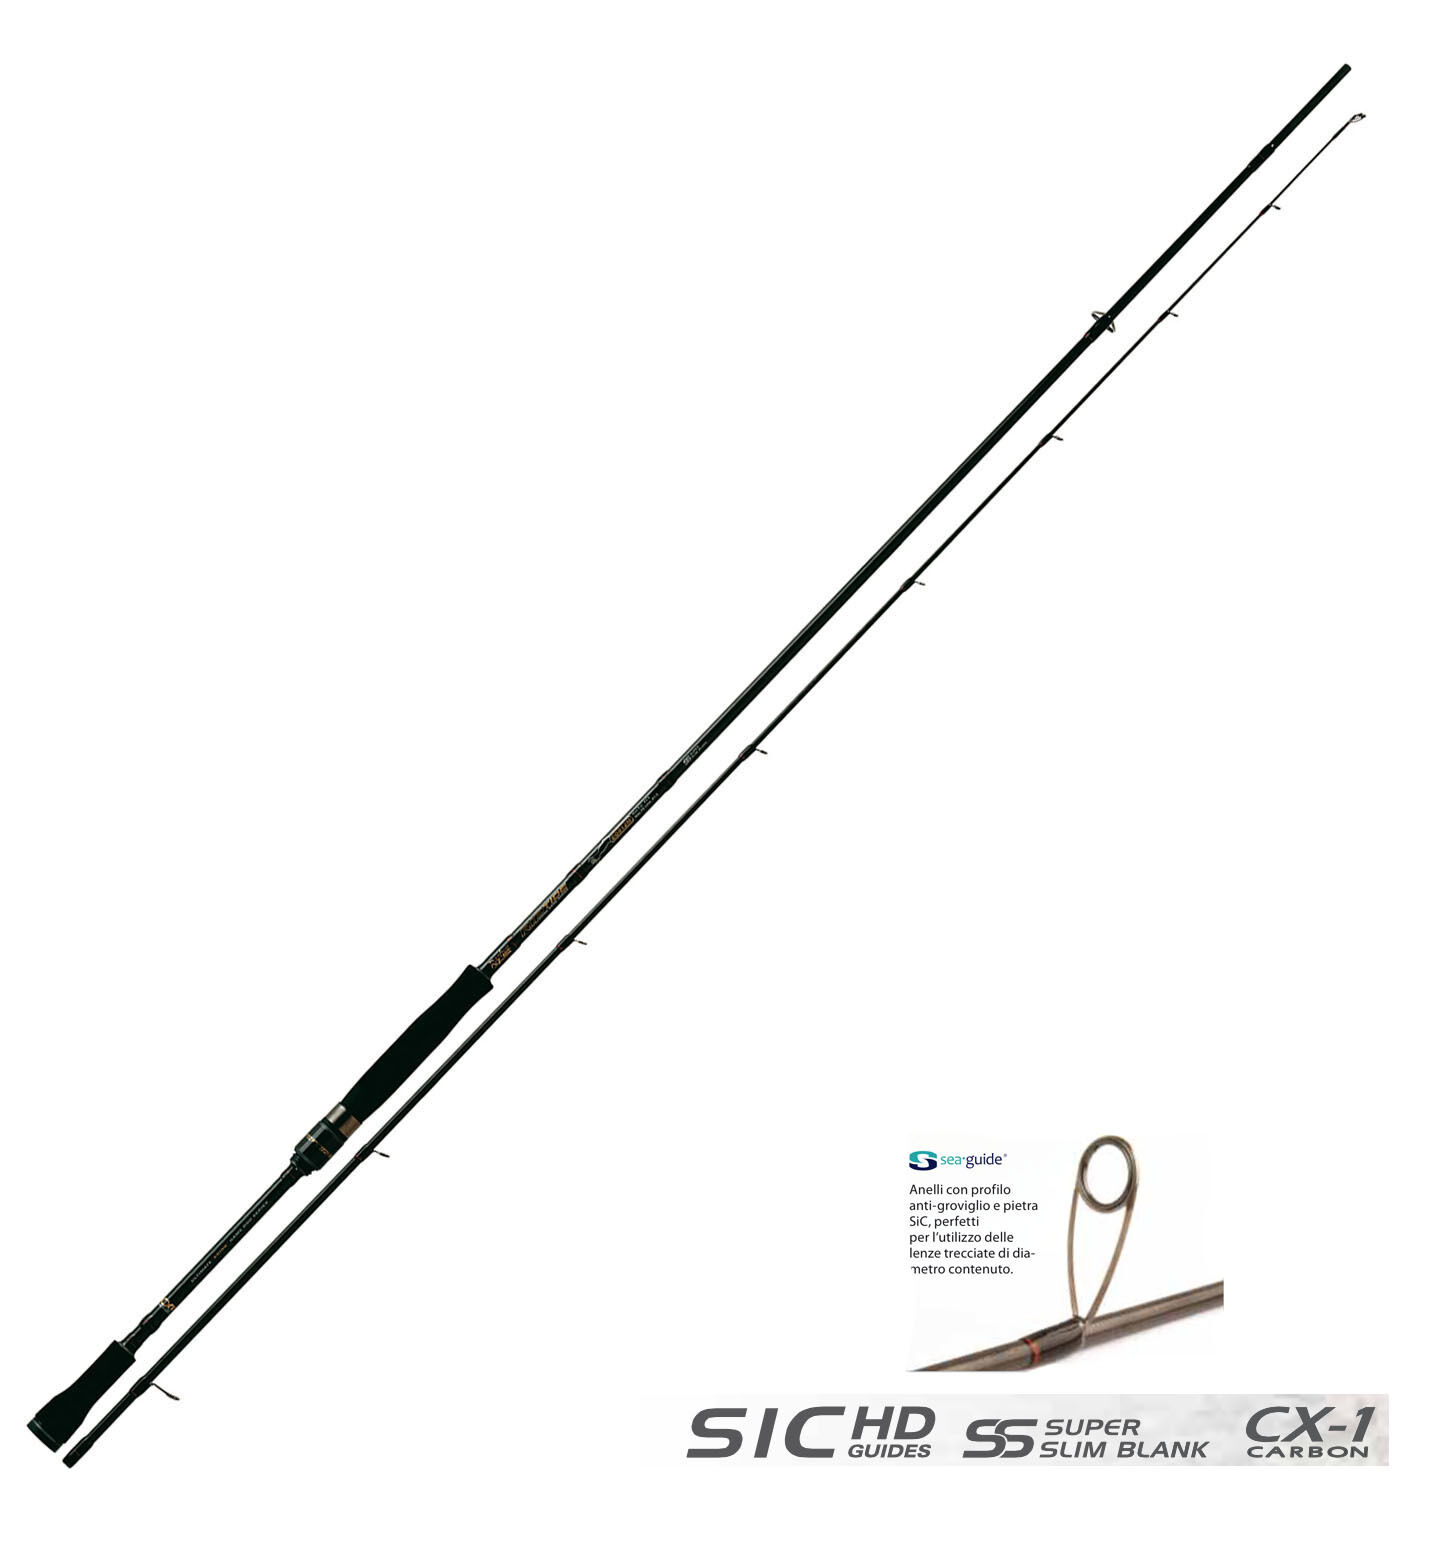 12630100 Rod Rapture Riptide Egi Spiel CX1 Carbon-Micro Spinning Pitch 246 Spinning Carbon-Micro bb7fbc